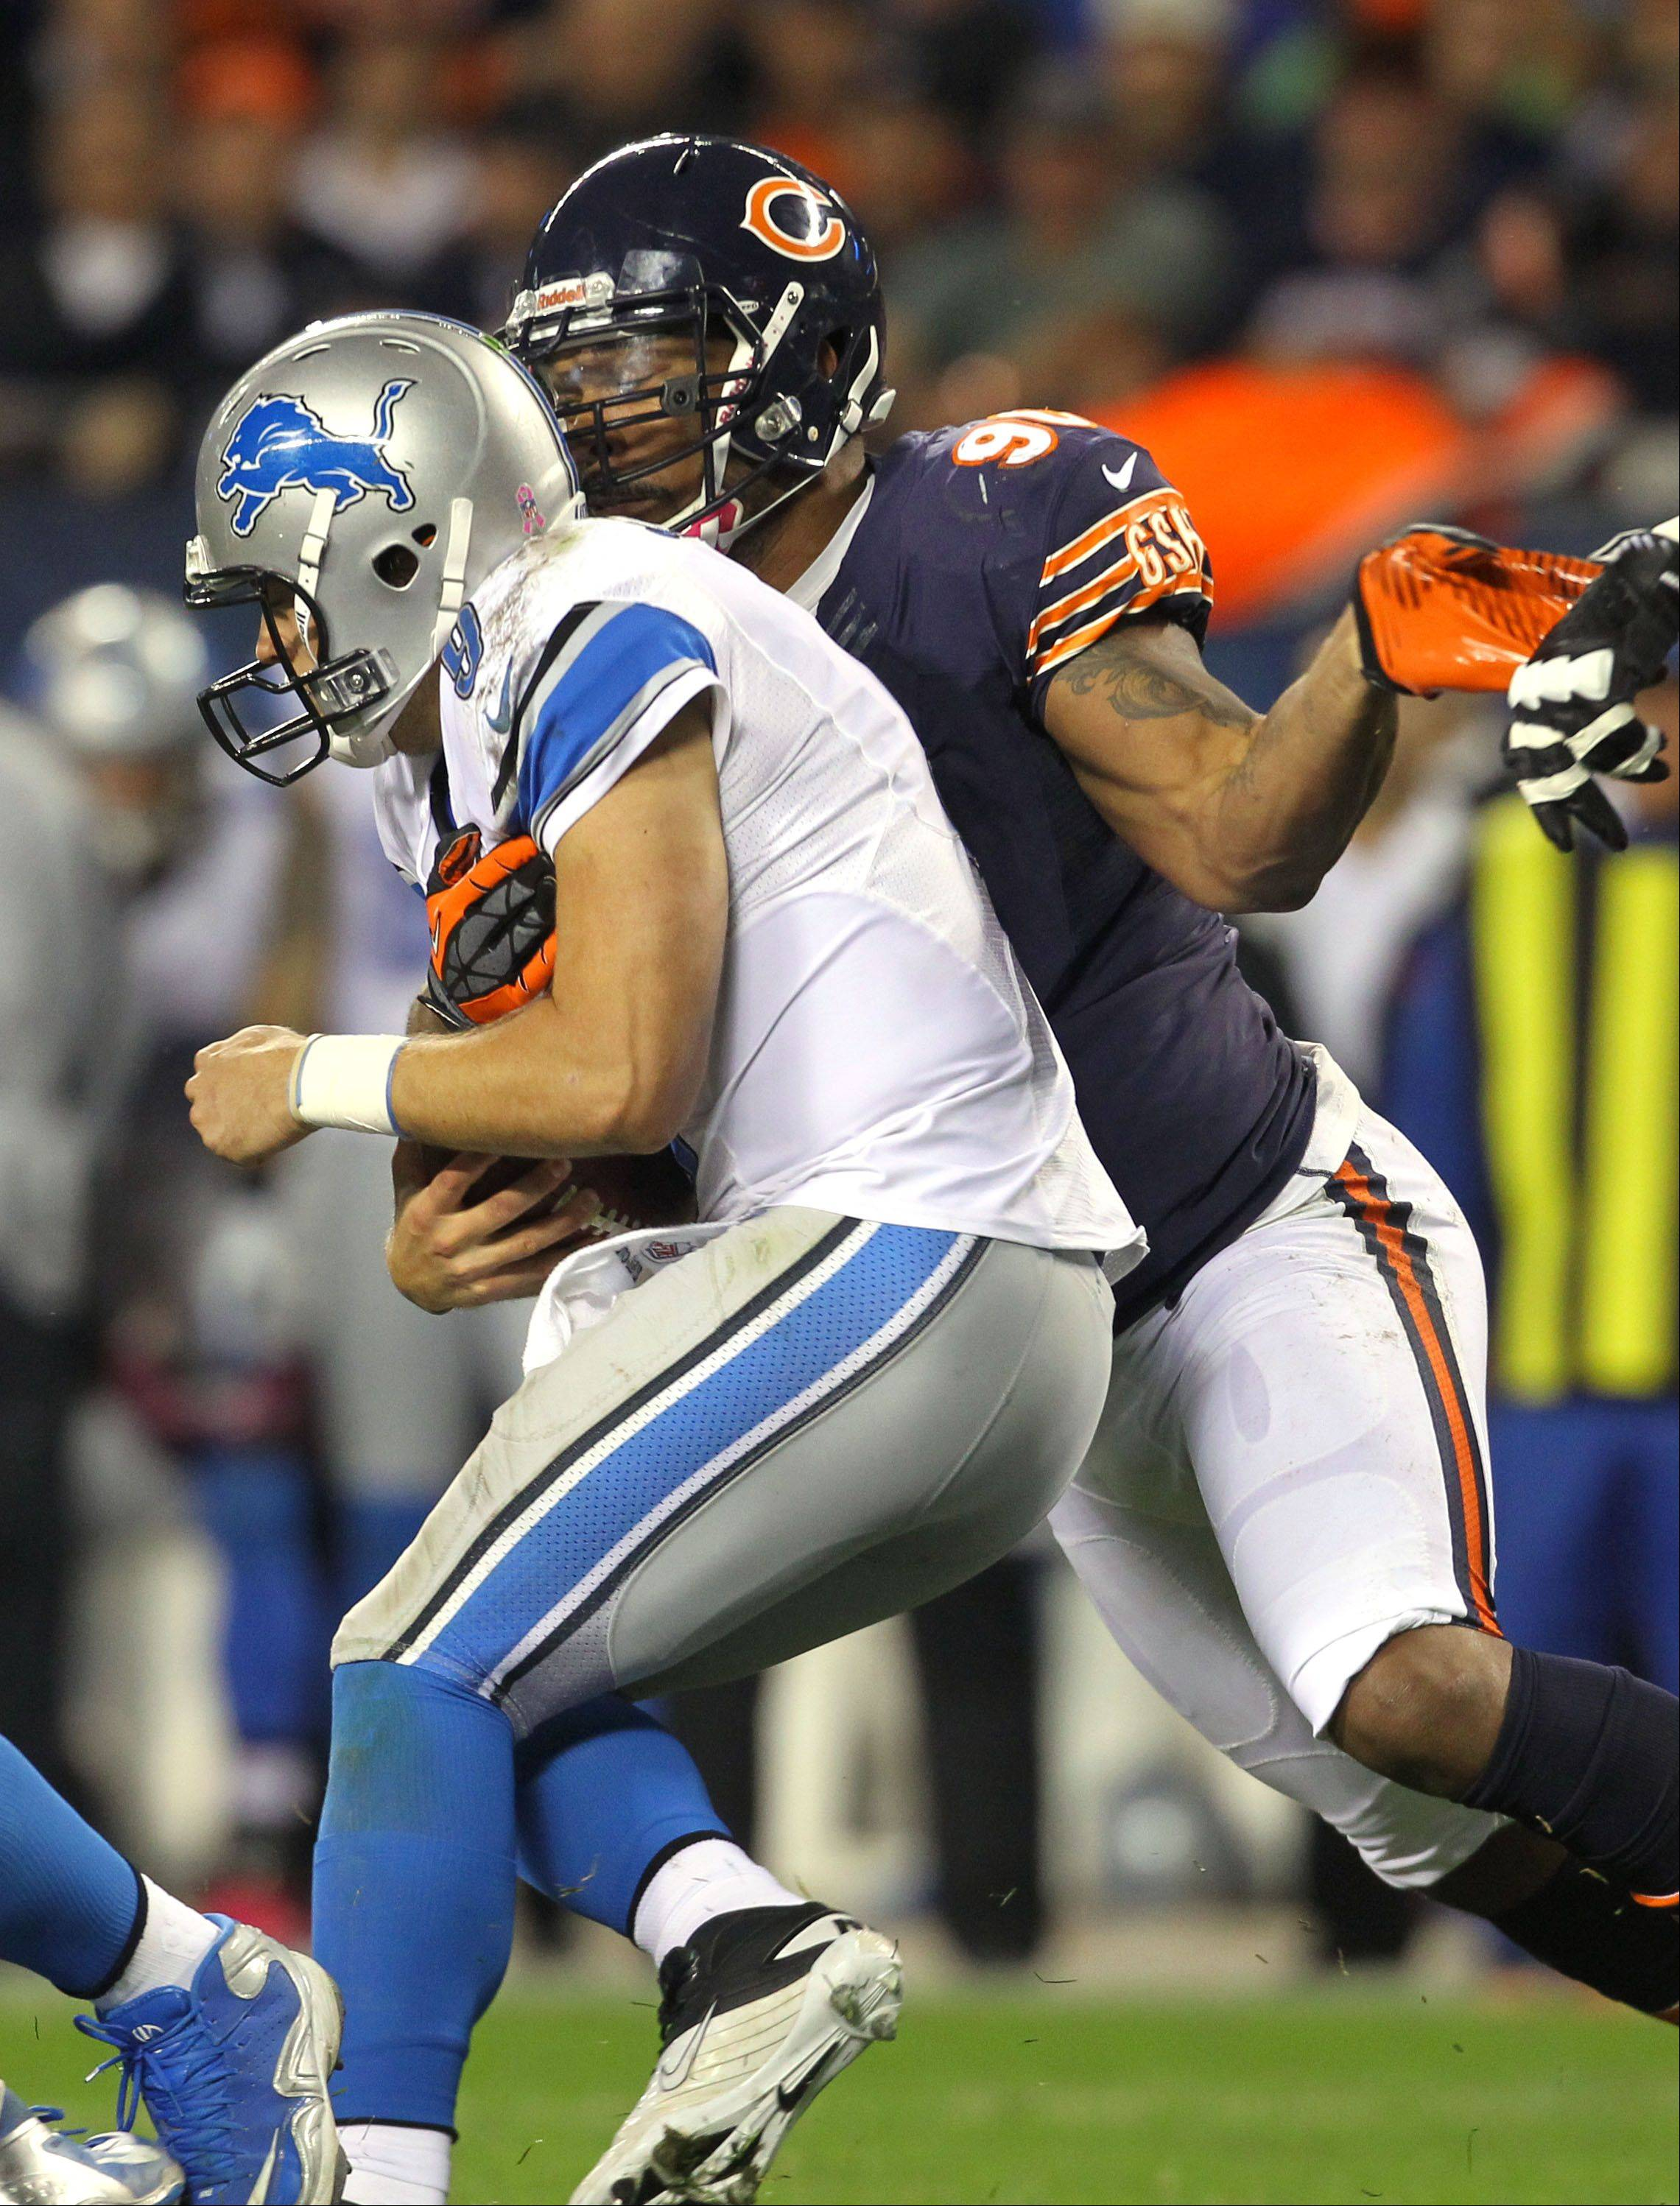 Chicago Bears defensive end Julius Peppers sacks Detroit Lions quarterback Matthew Stafford .